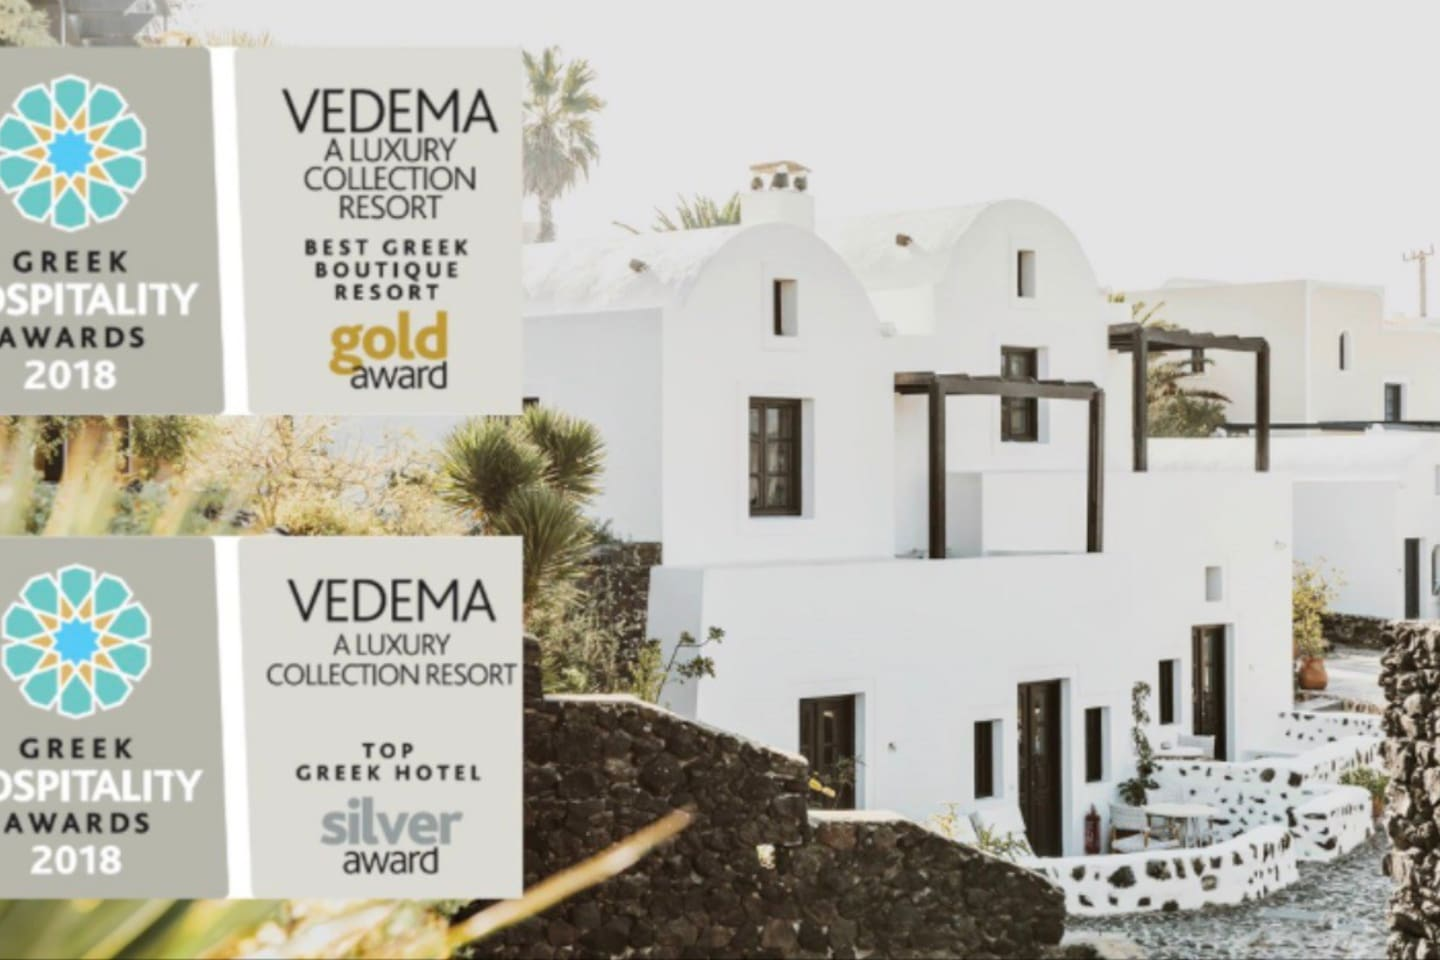 Vedema, the 5-Star, Gold award winning luxury collection boutique hotel